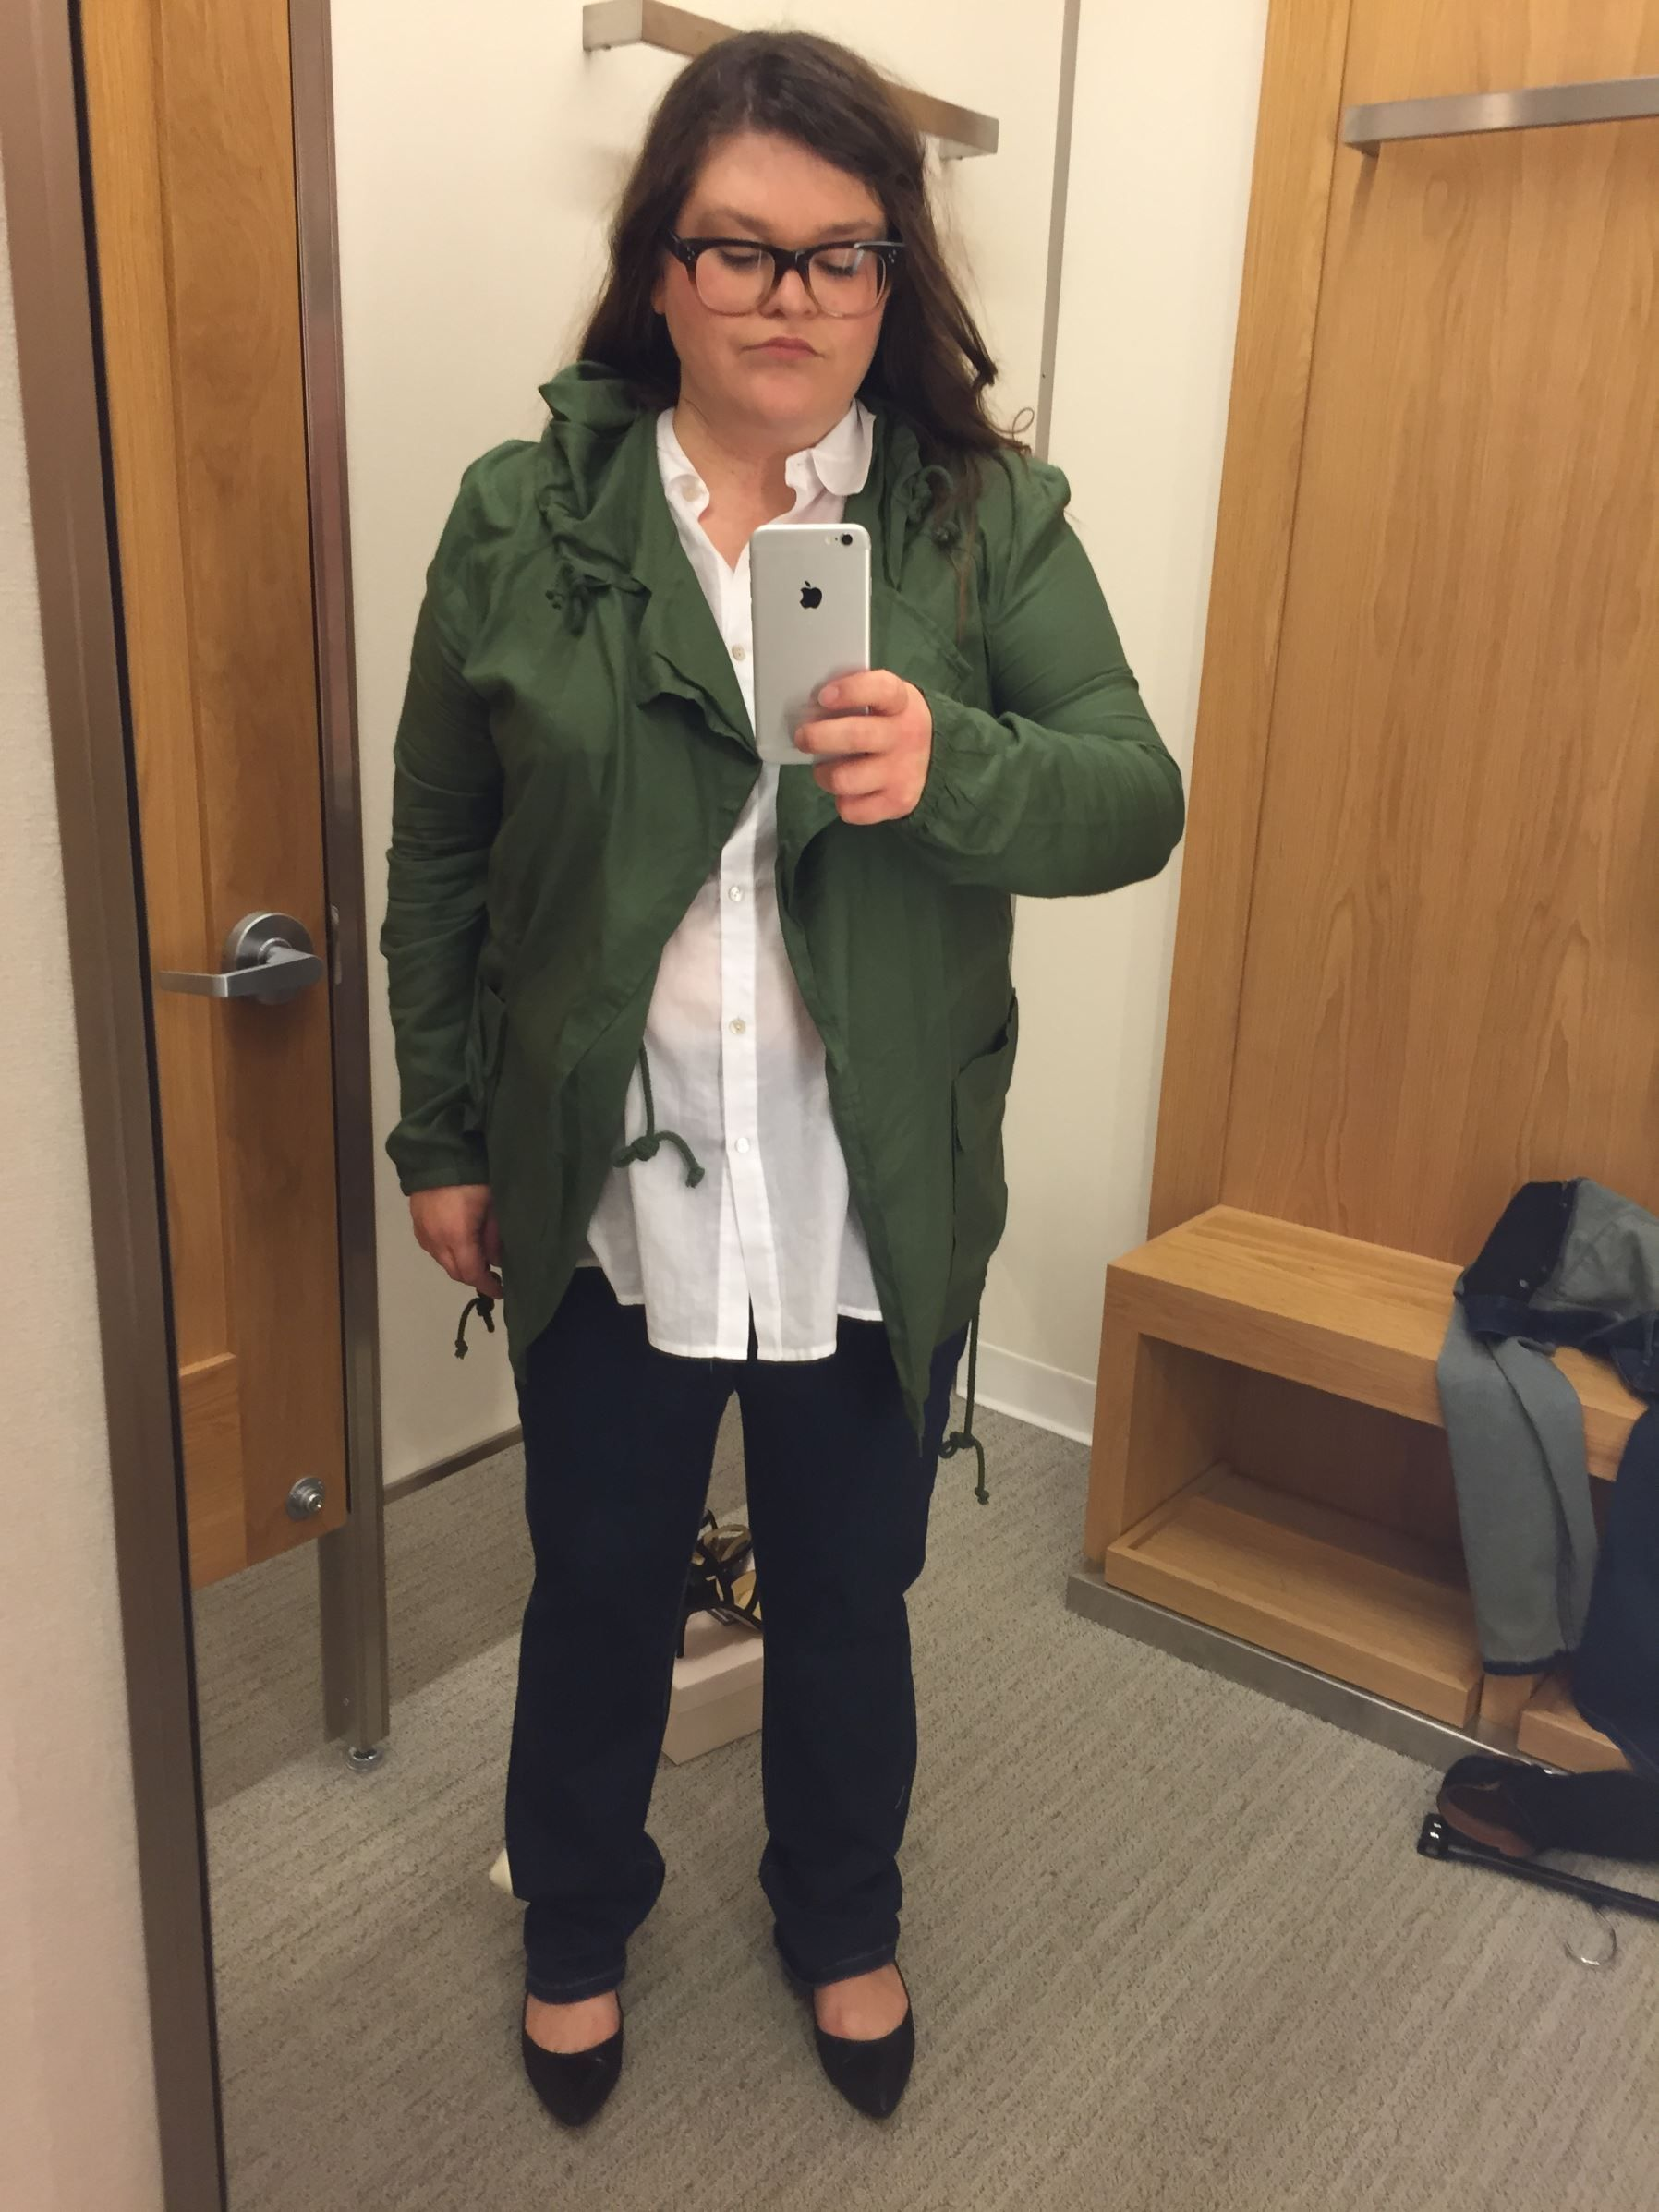 4a733ffa38b Size 16 Woman Asks 5 Stylists to Dress Her in  Flattering  Outfits ...